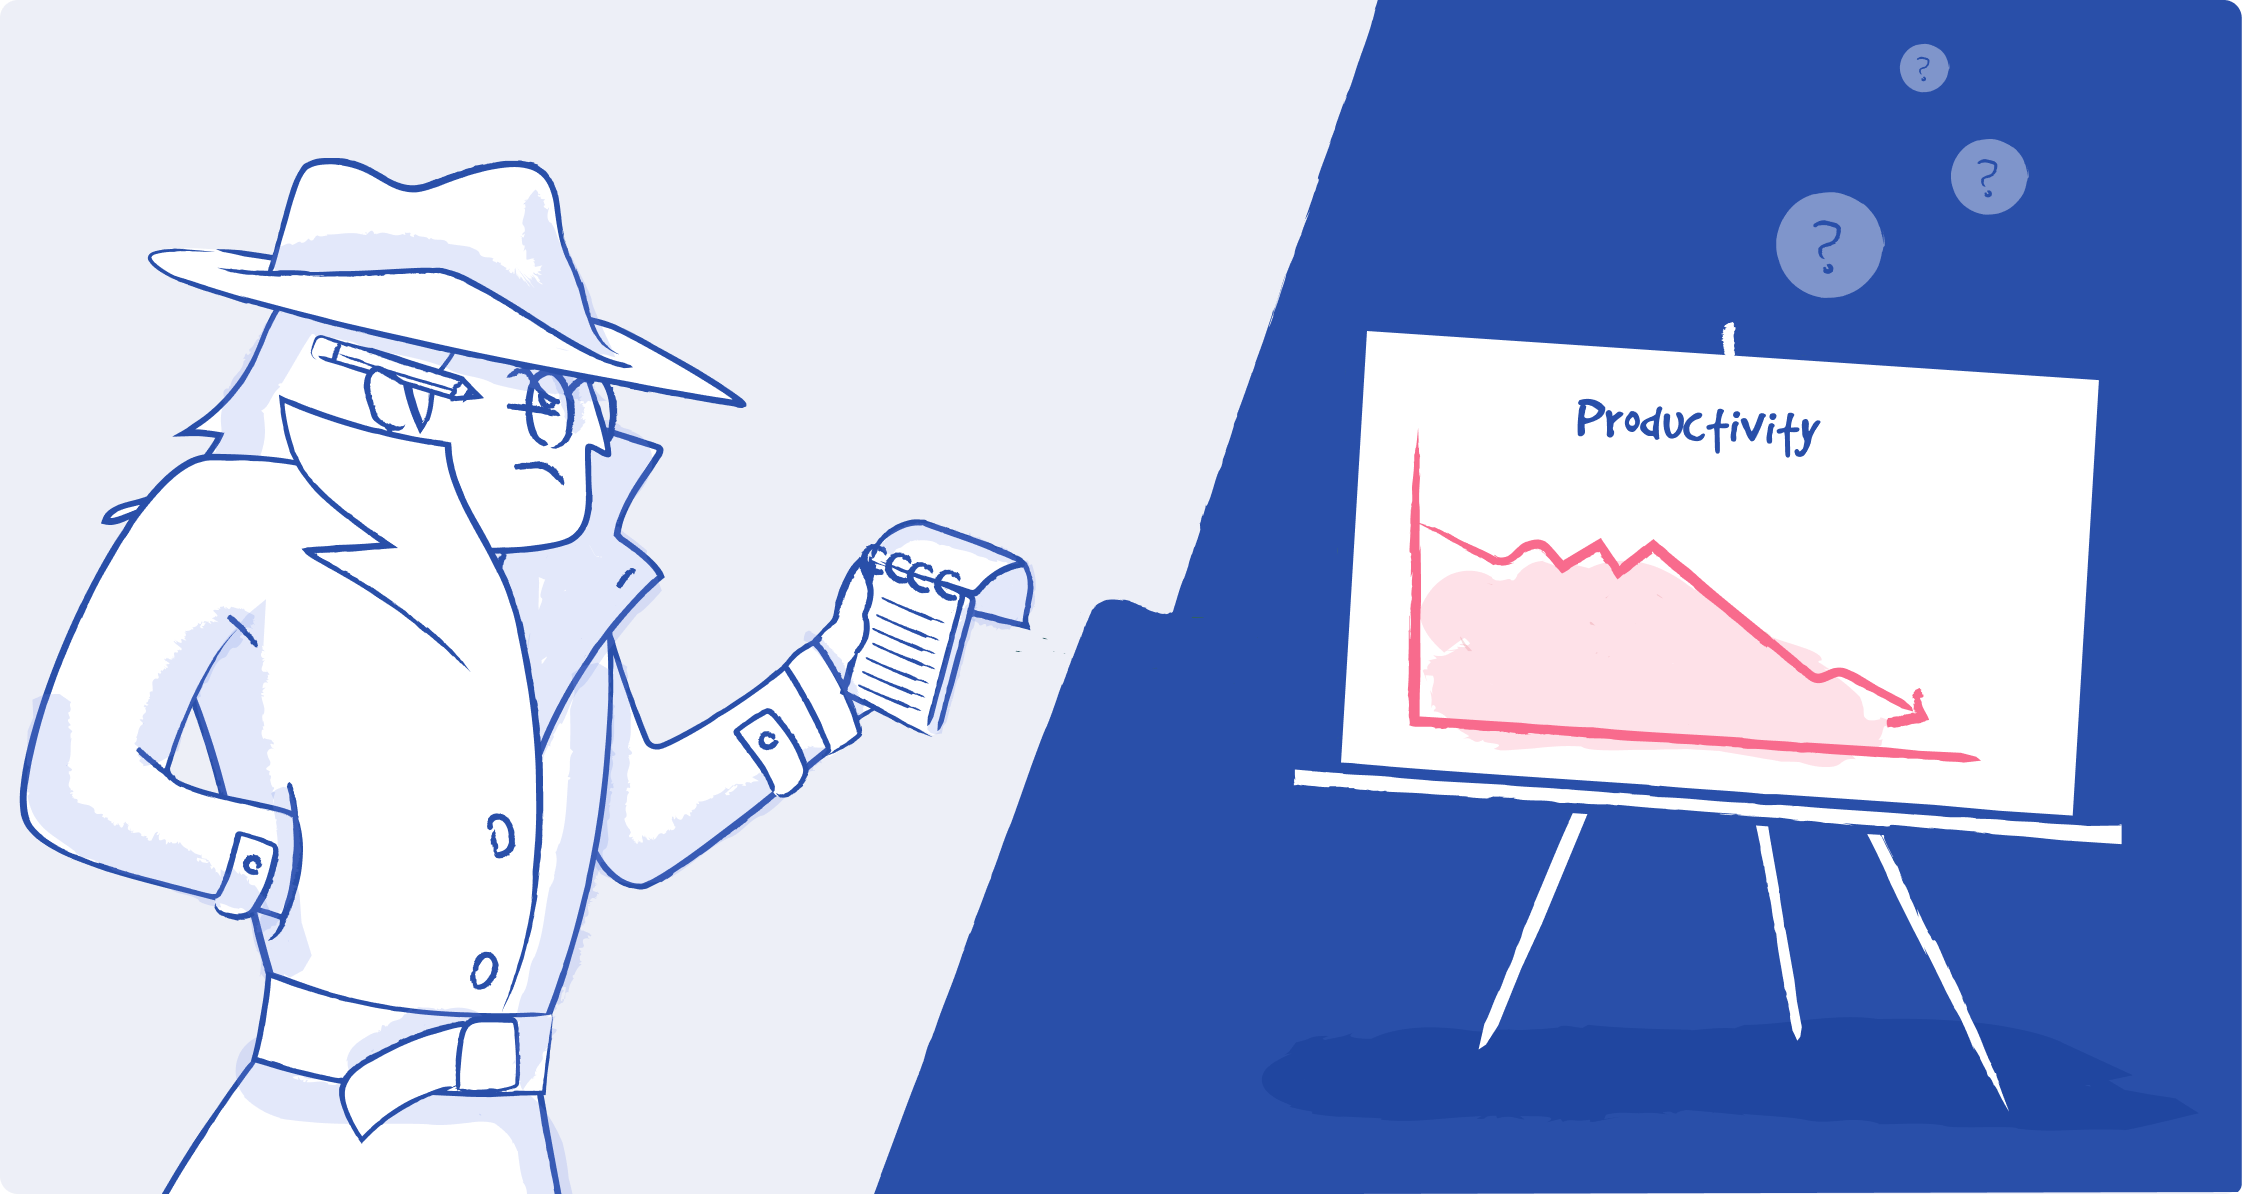 This illustration is split in two. On the left is a detective in a trenchcoat holding a notepad. On the right is a presentation board on a tripod showing a productivity graph with a downward arrow.